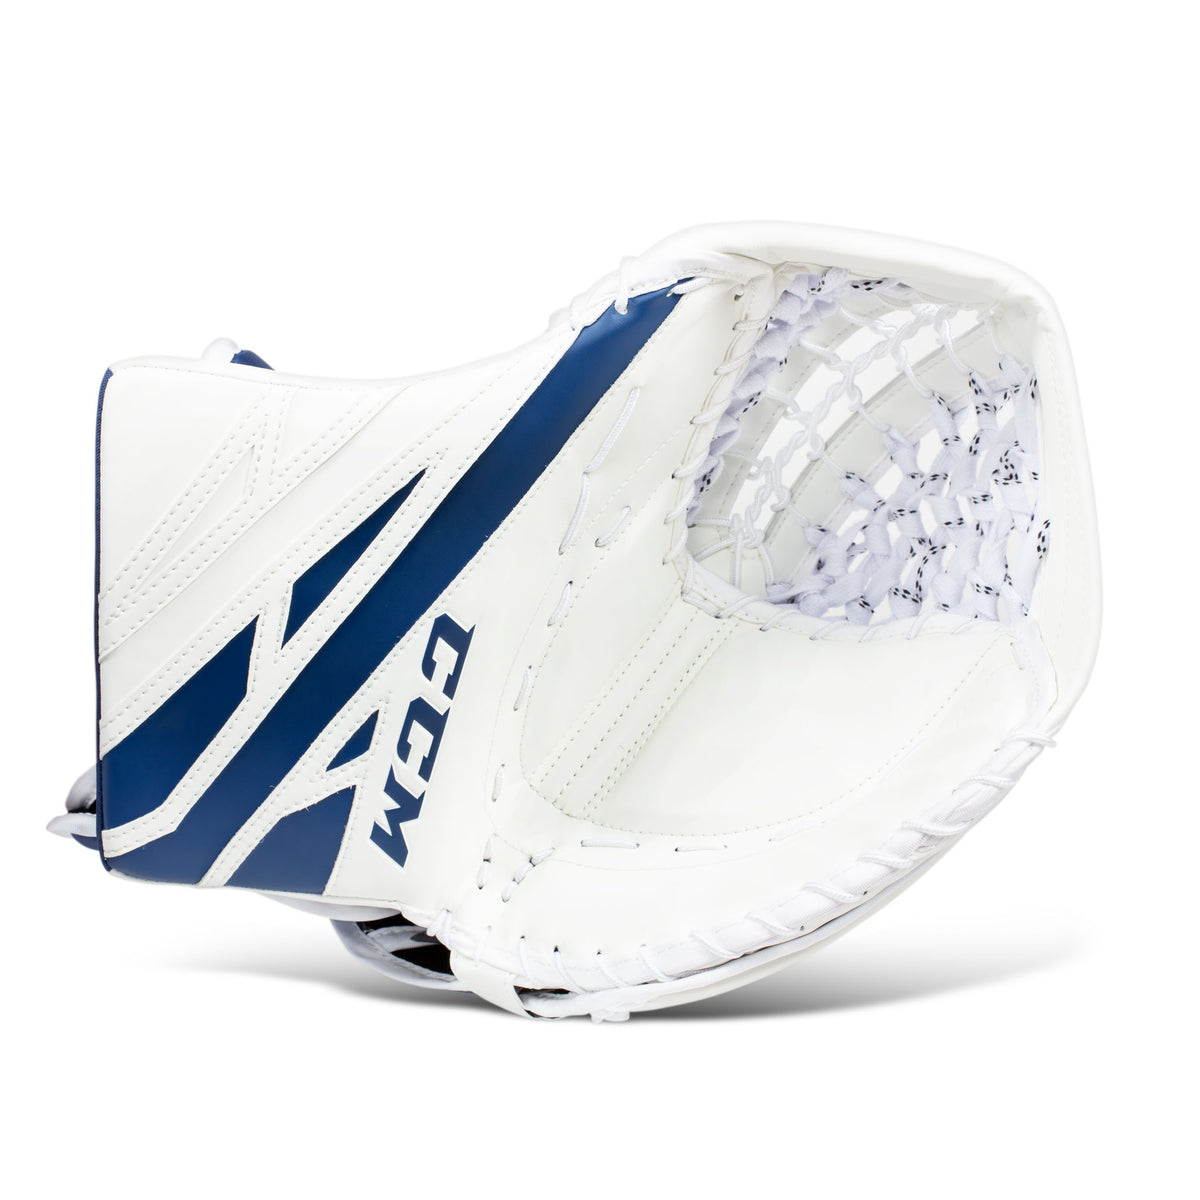 CCM Extreme Flex E4.5 Senior Goalie Catcher - Source Exclusive